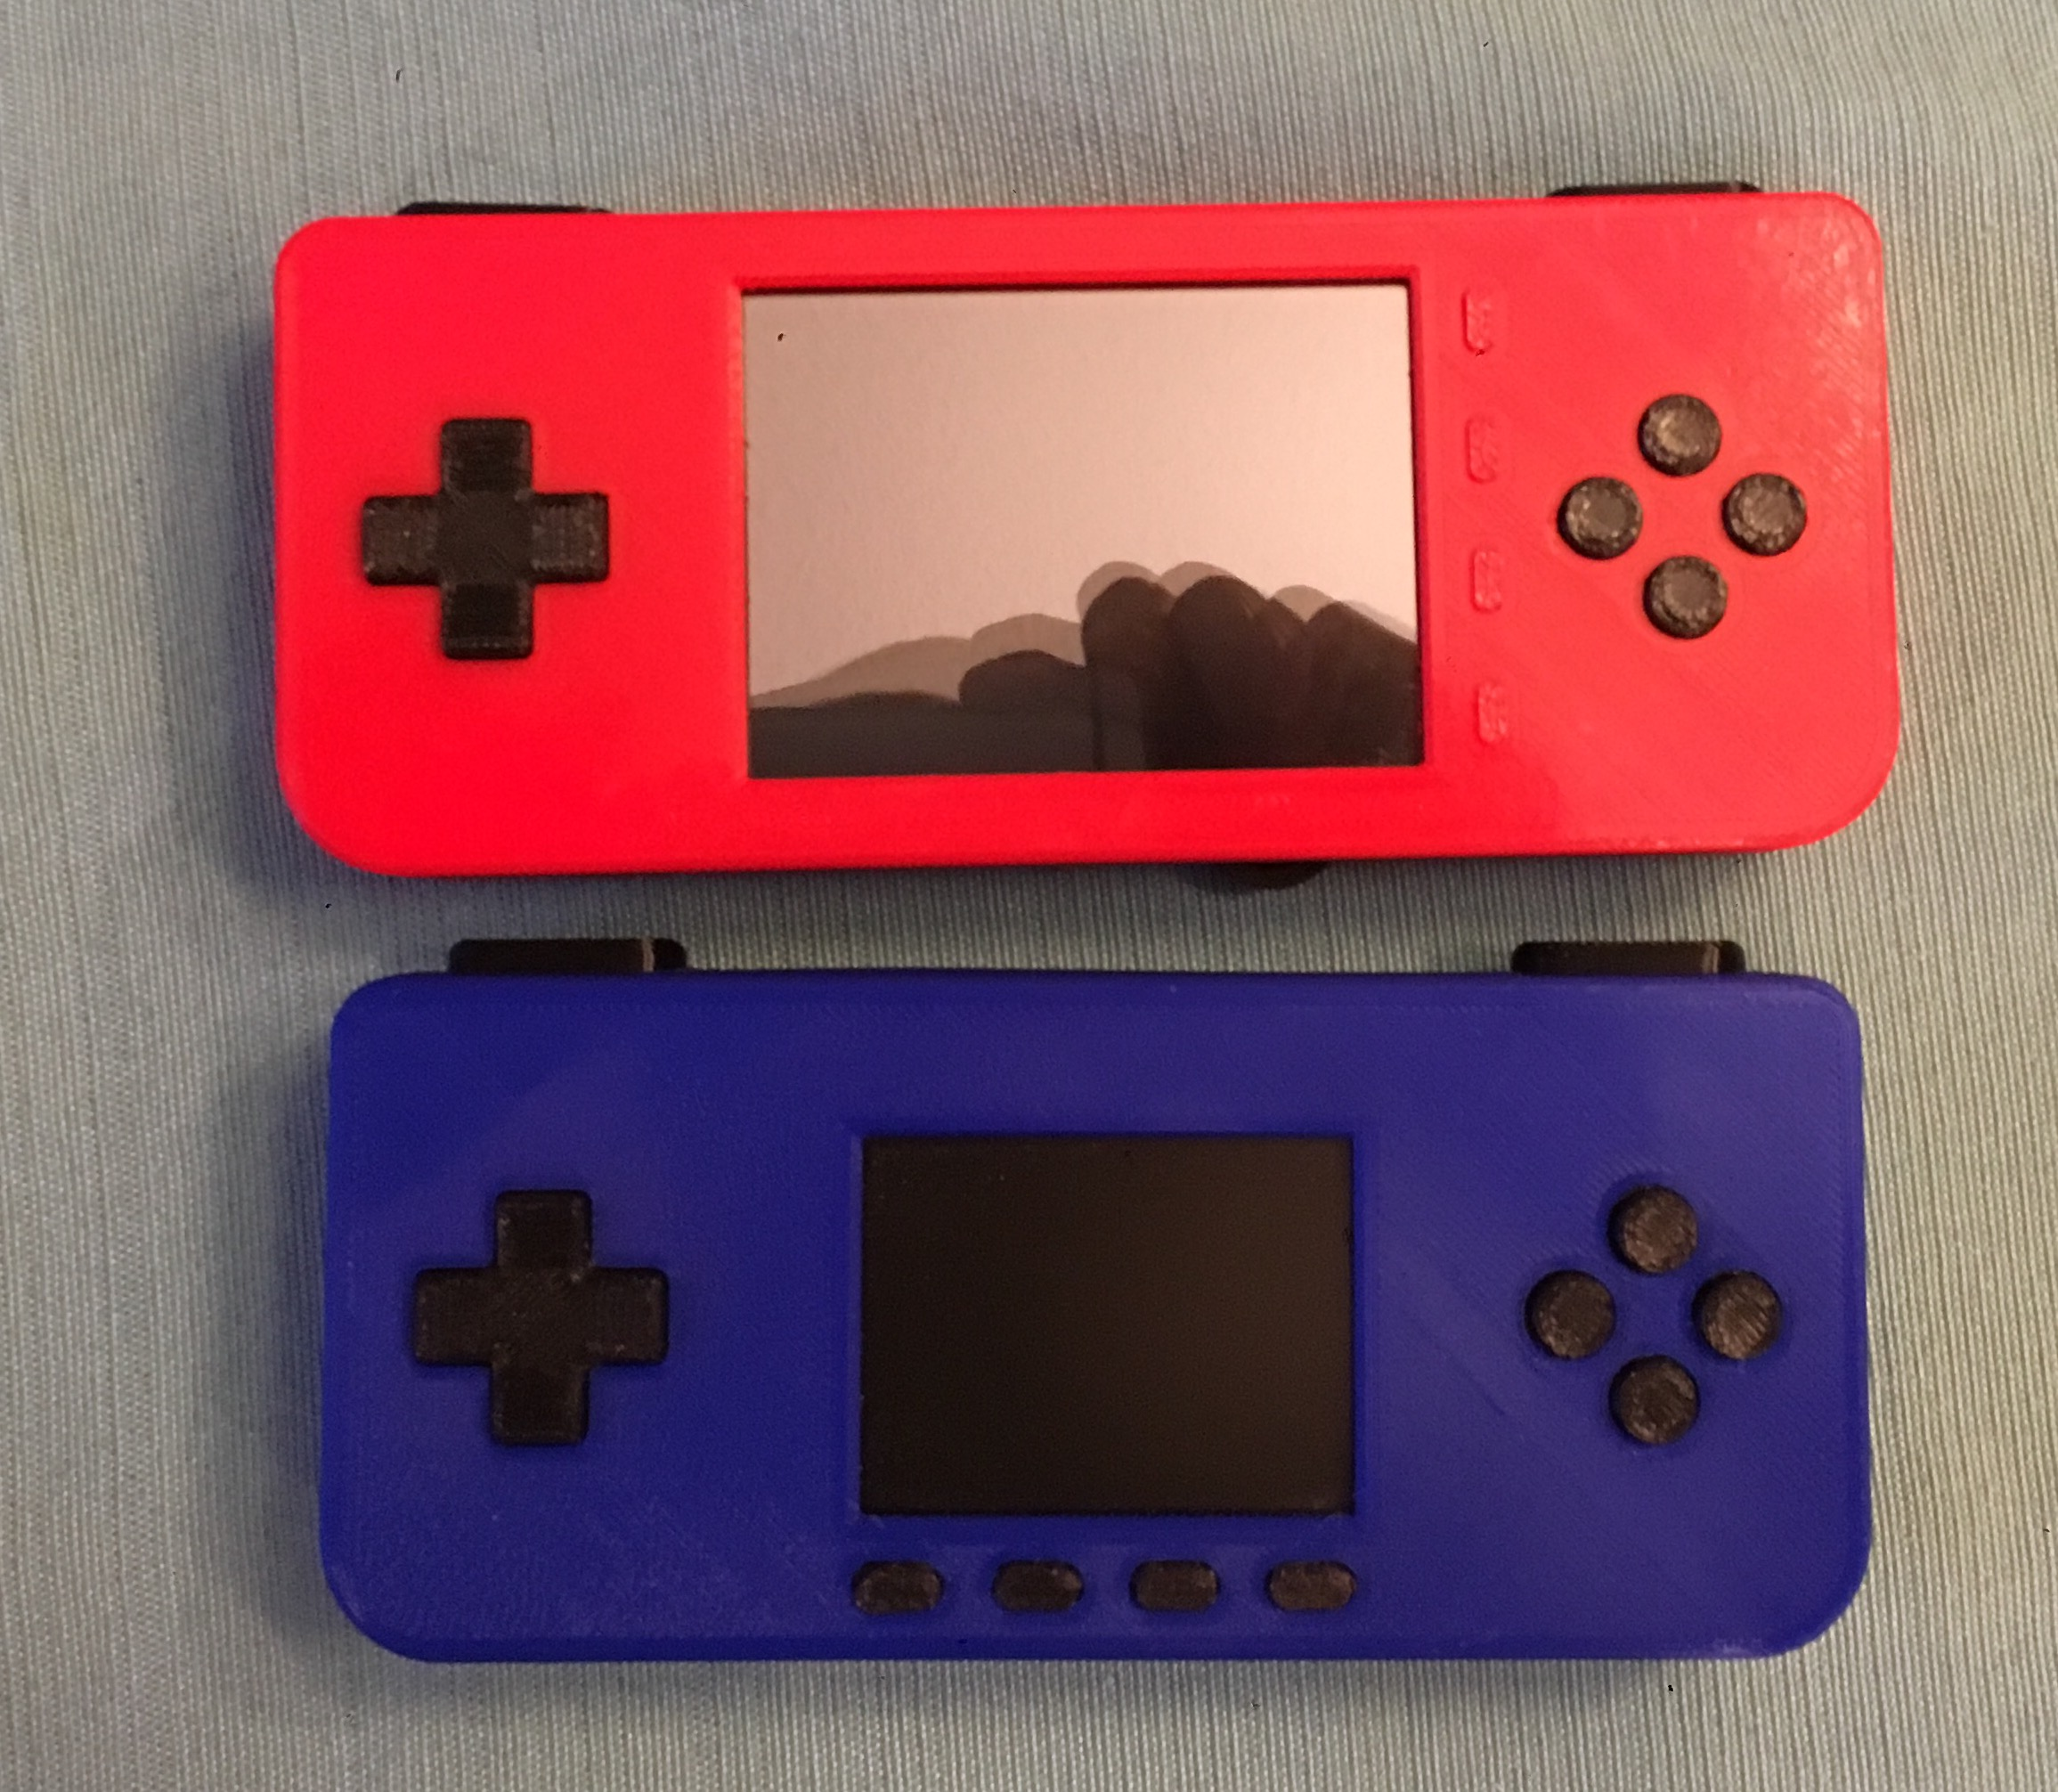 PiGRRL Zero Plus by 3dprintspace - Thingiverse